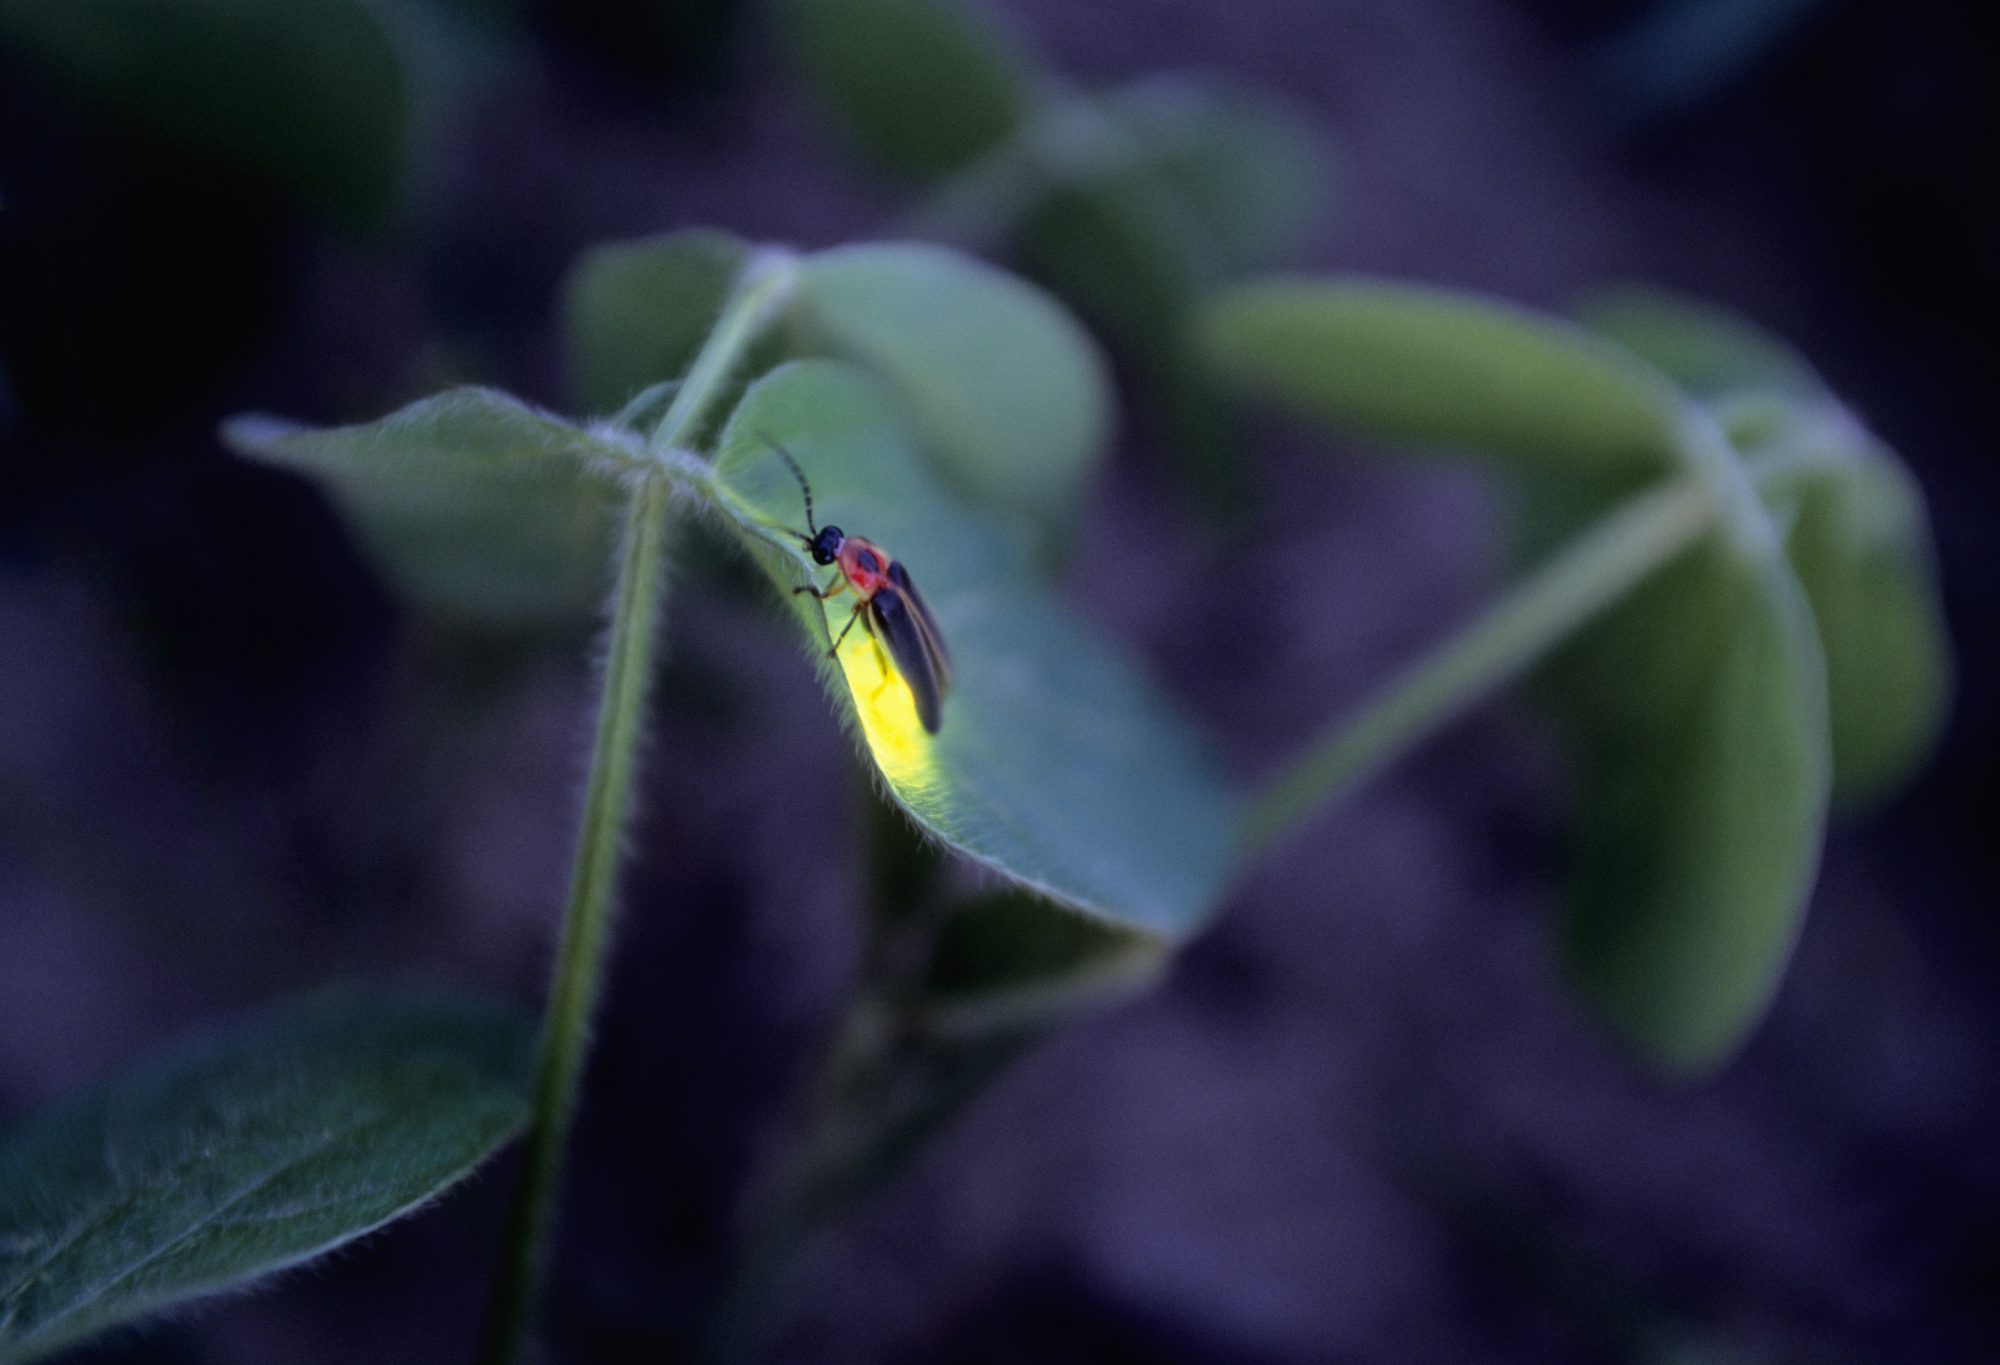 Firefly on leaf at night